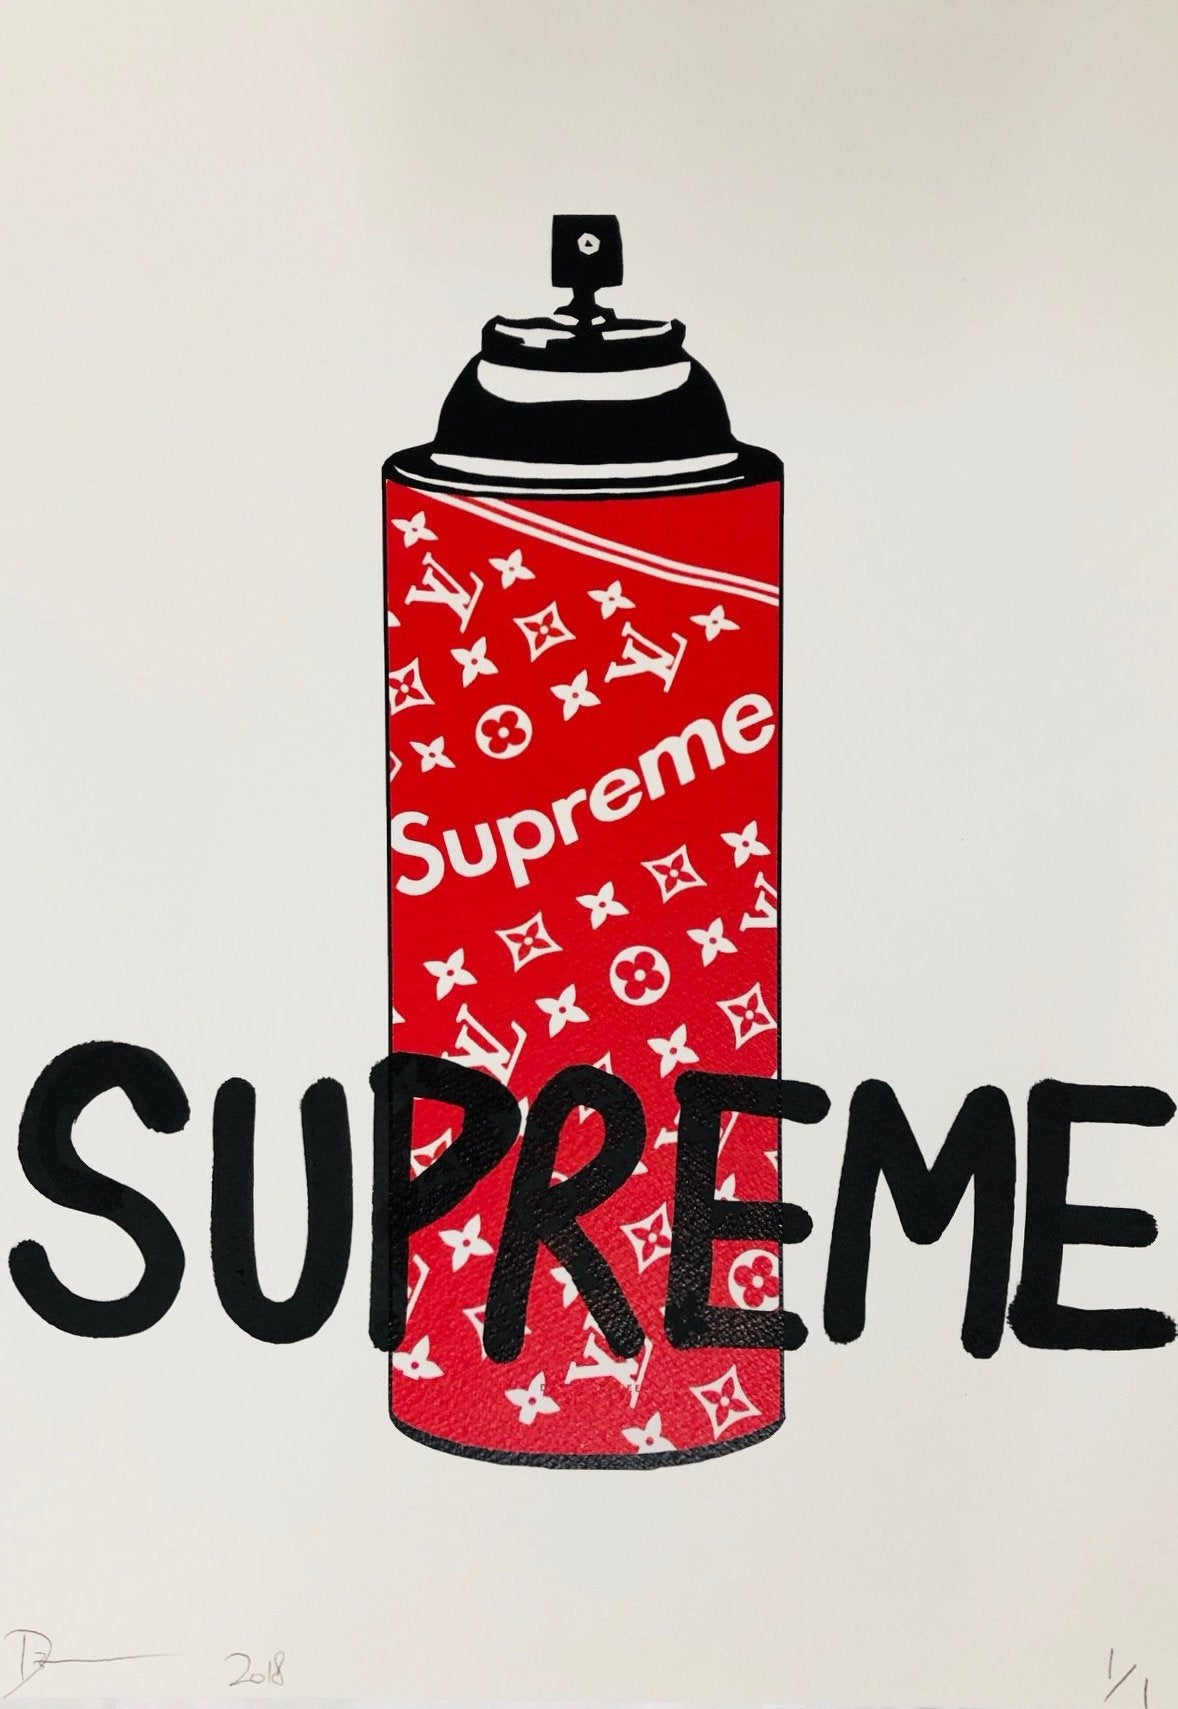 SUPREME 45x32cm (Edition of 1)